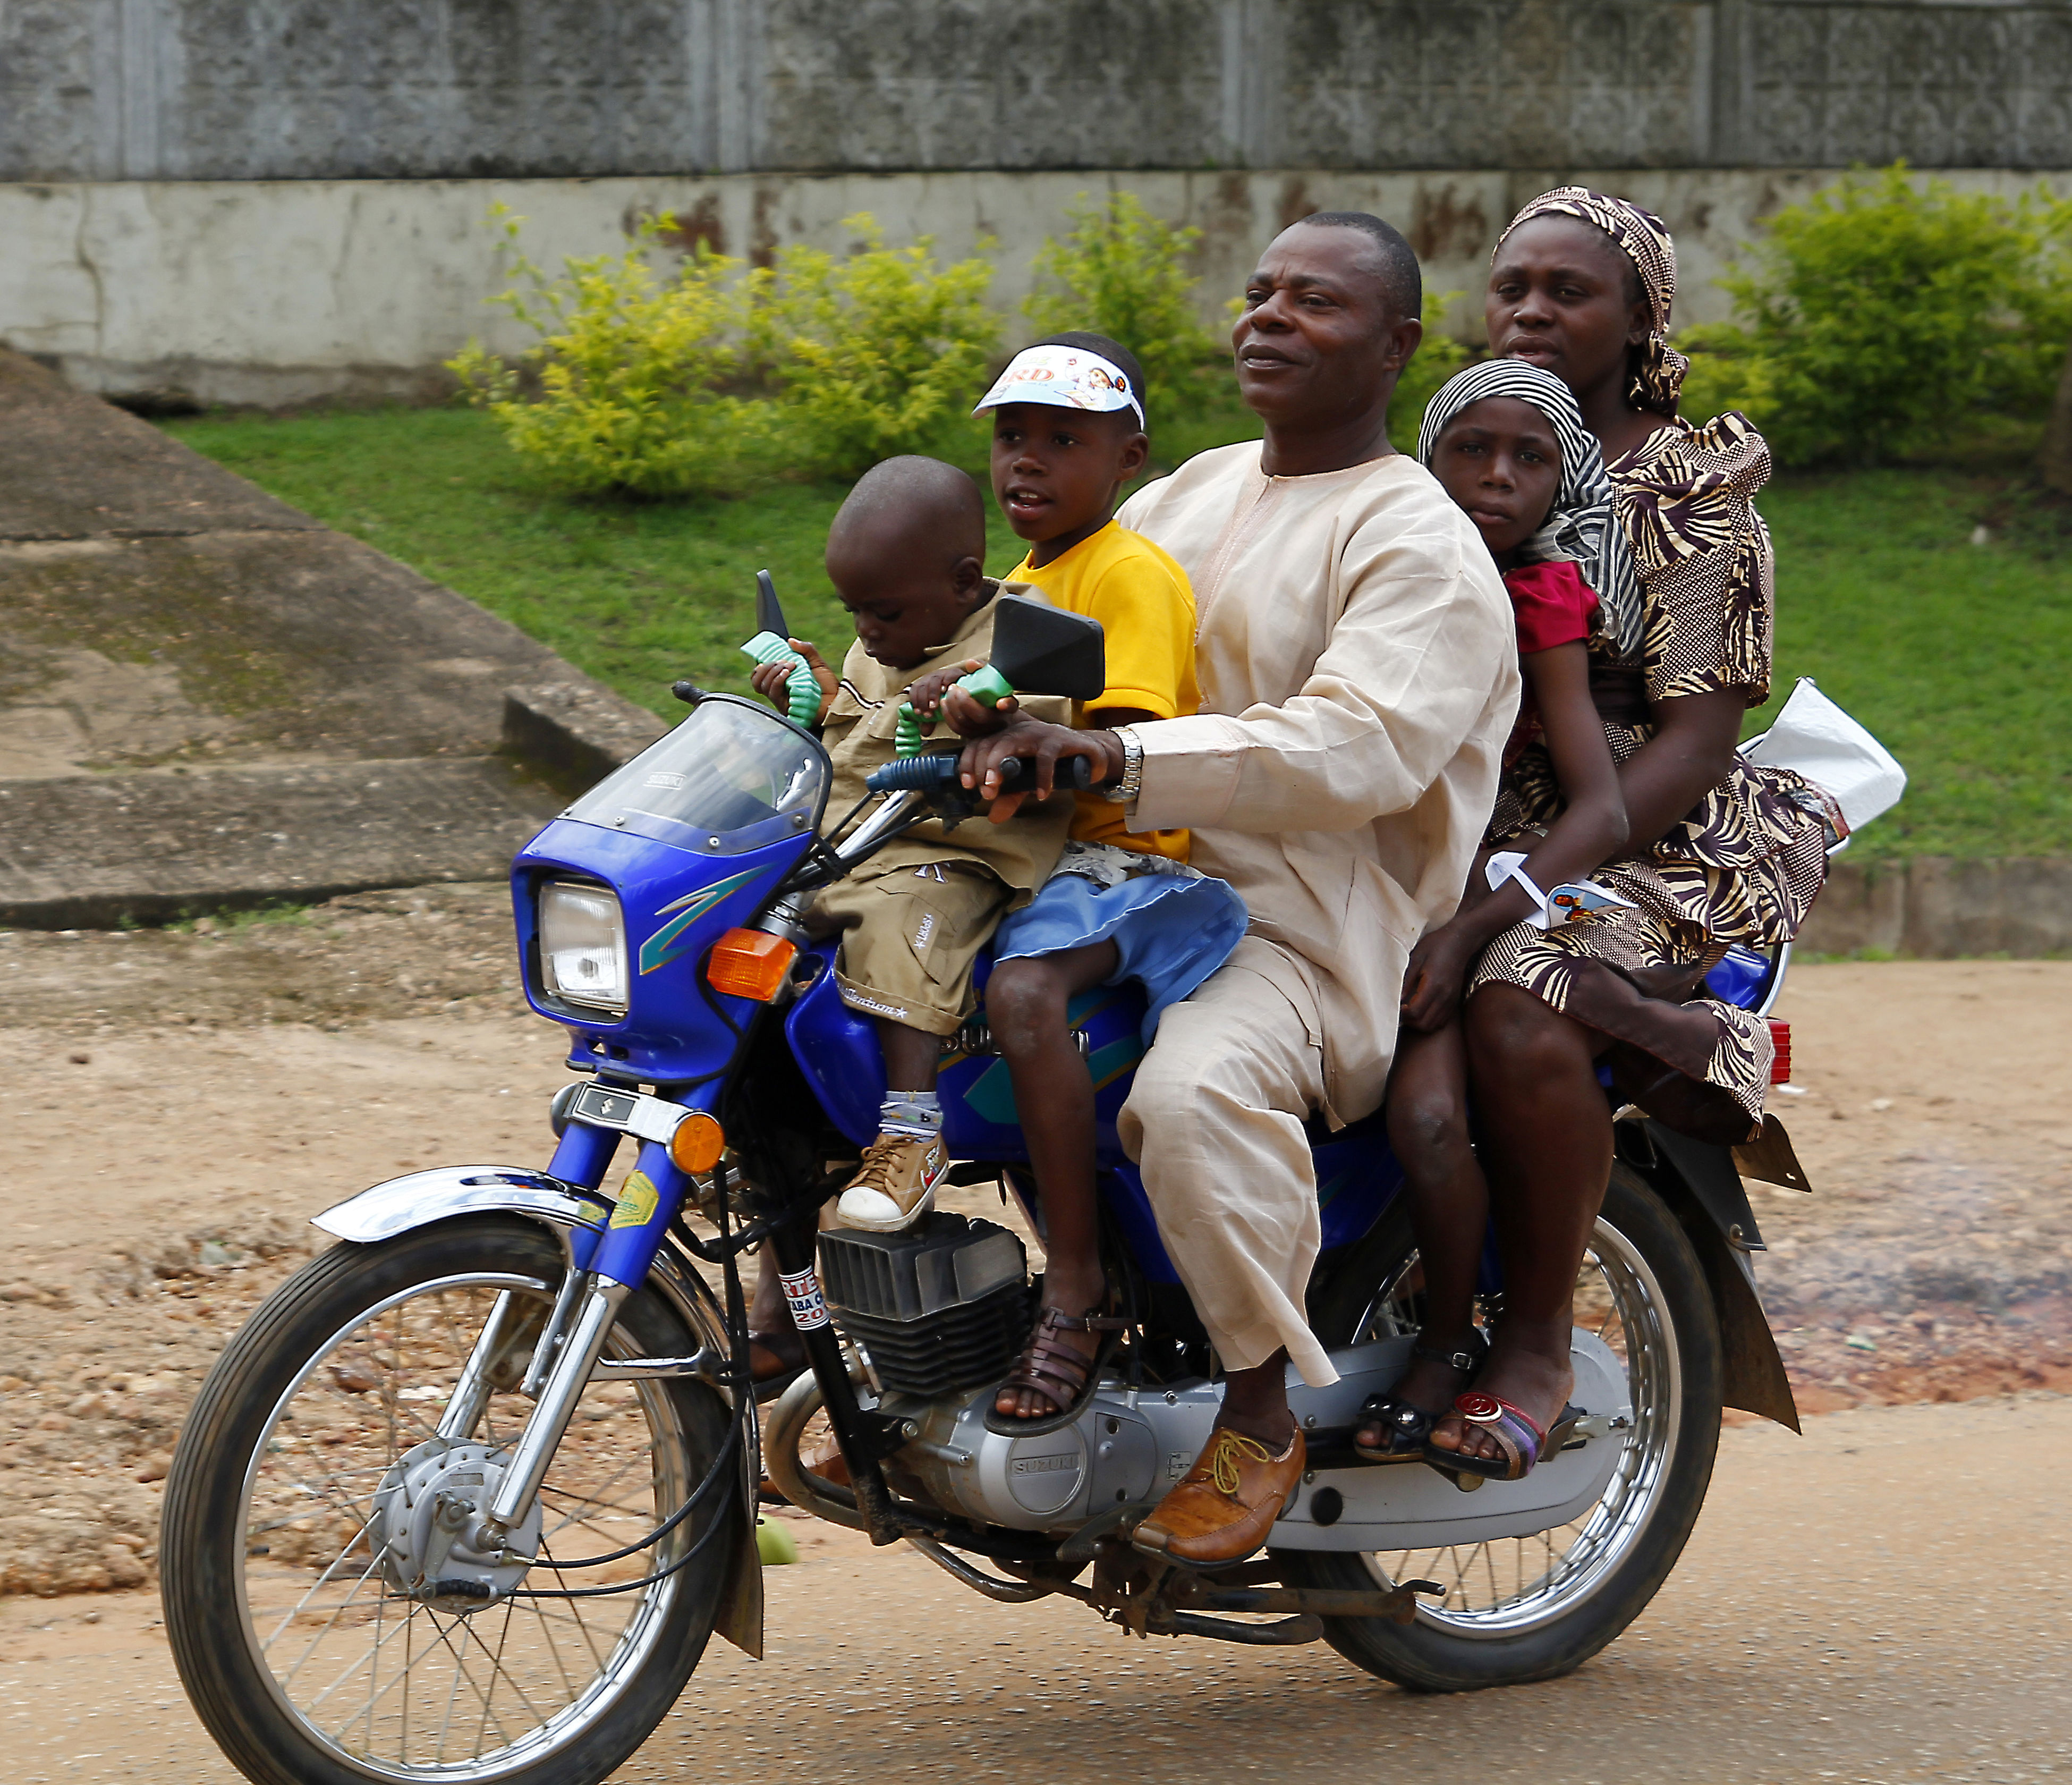 Five members of a nigerian family travelling by motorcycle, in the city of Akure, in the south-west of Nigeria. Akure Akure, Alone Balance Childhood Daughter Day Five Friendship Front View Fun Land Vehicle Lifestyles Mode Of Transport Motor Scooter Motorcycle Nigeria Parking Real People Side View Sitting Son Transportation First Eyeem Photo